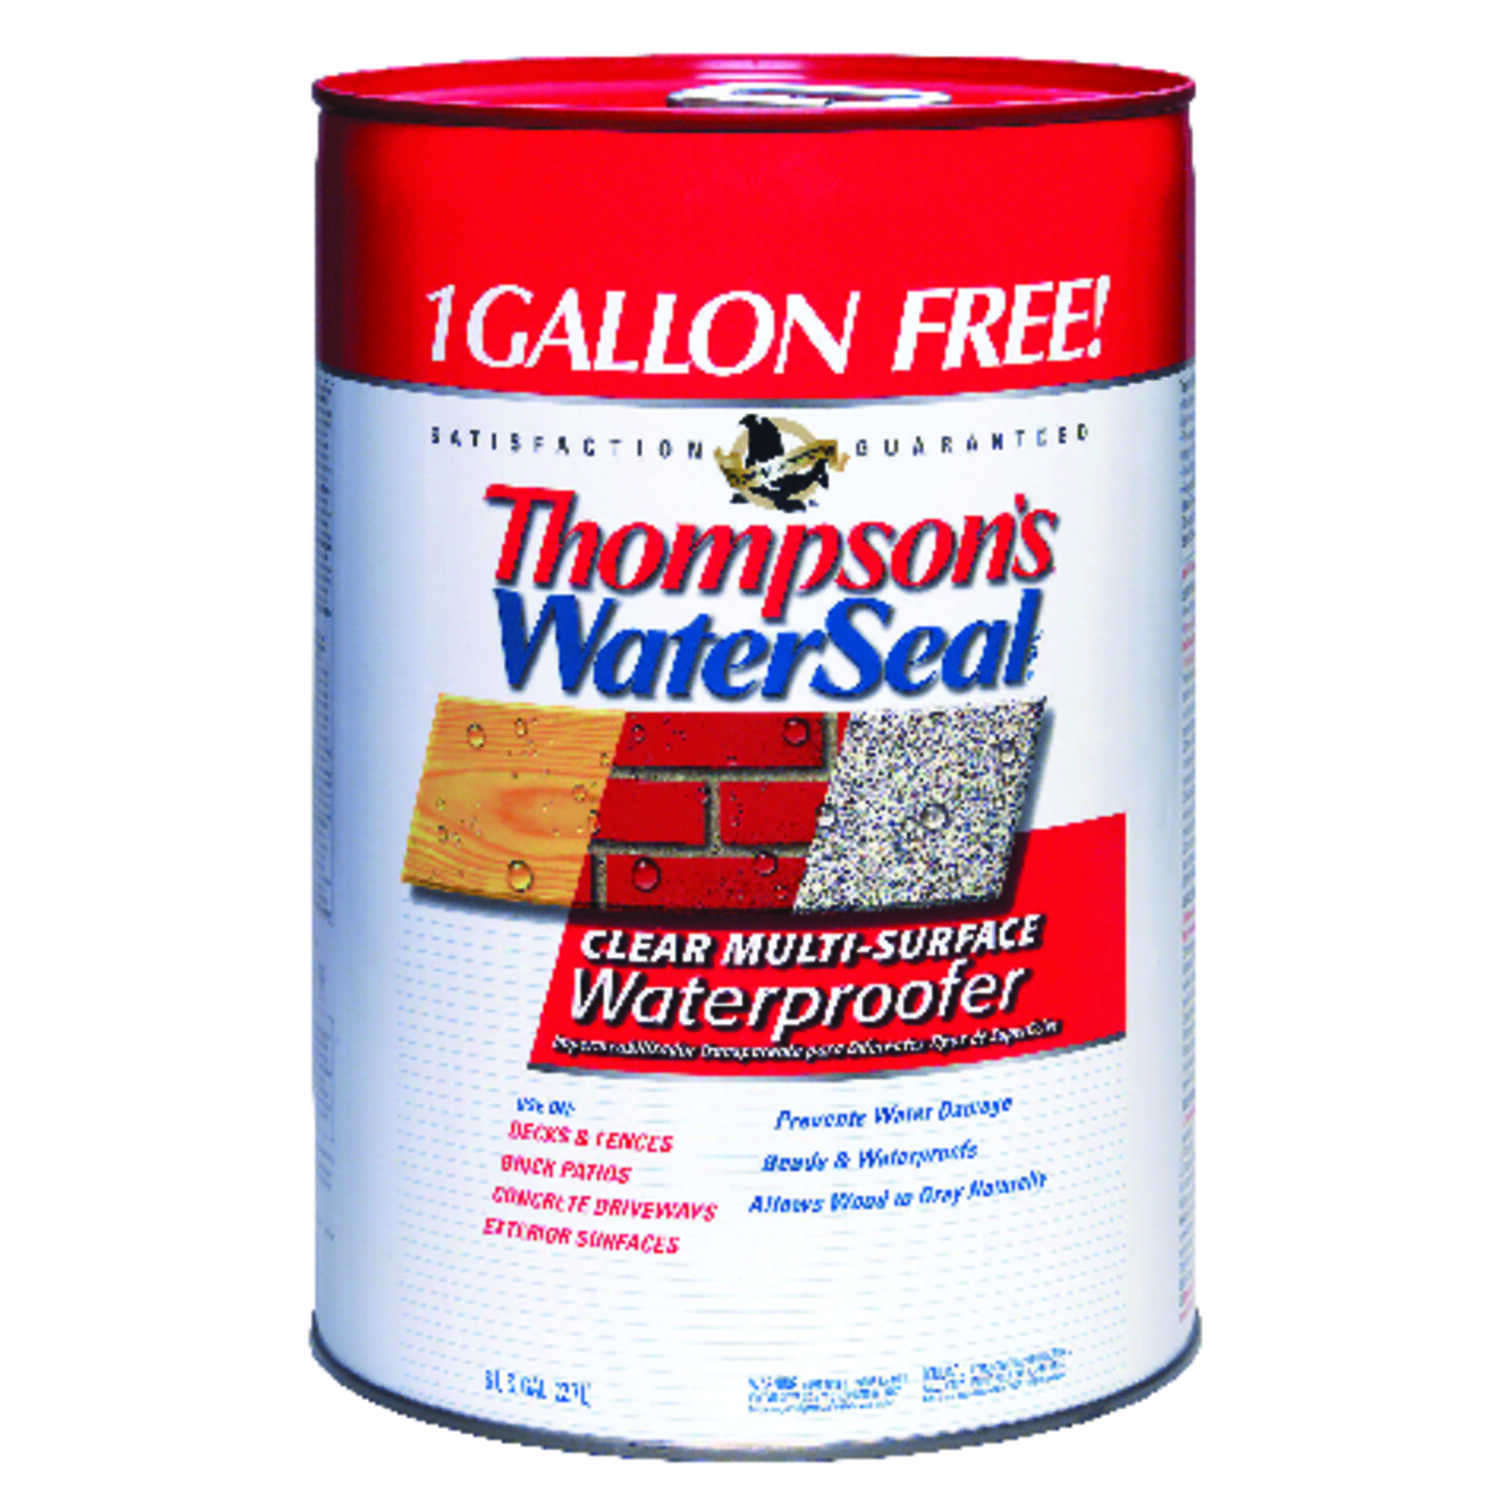 Thompson's Waterseal  Clear  Water-Based  Multi-Surface Waterproofer  6 gal. Smooth